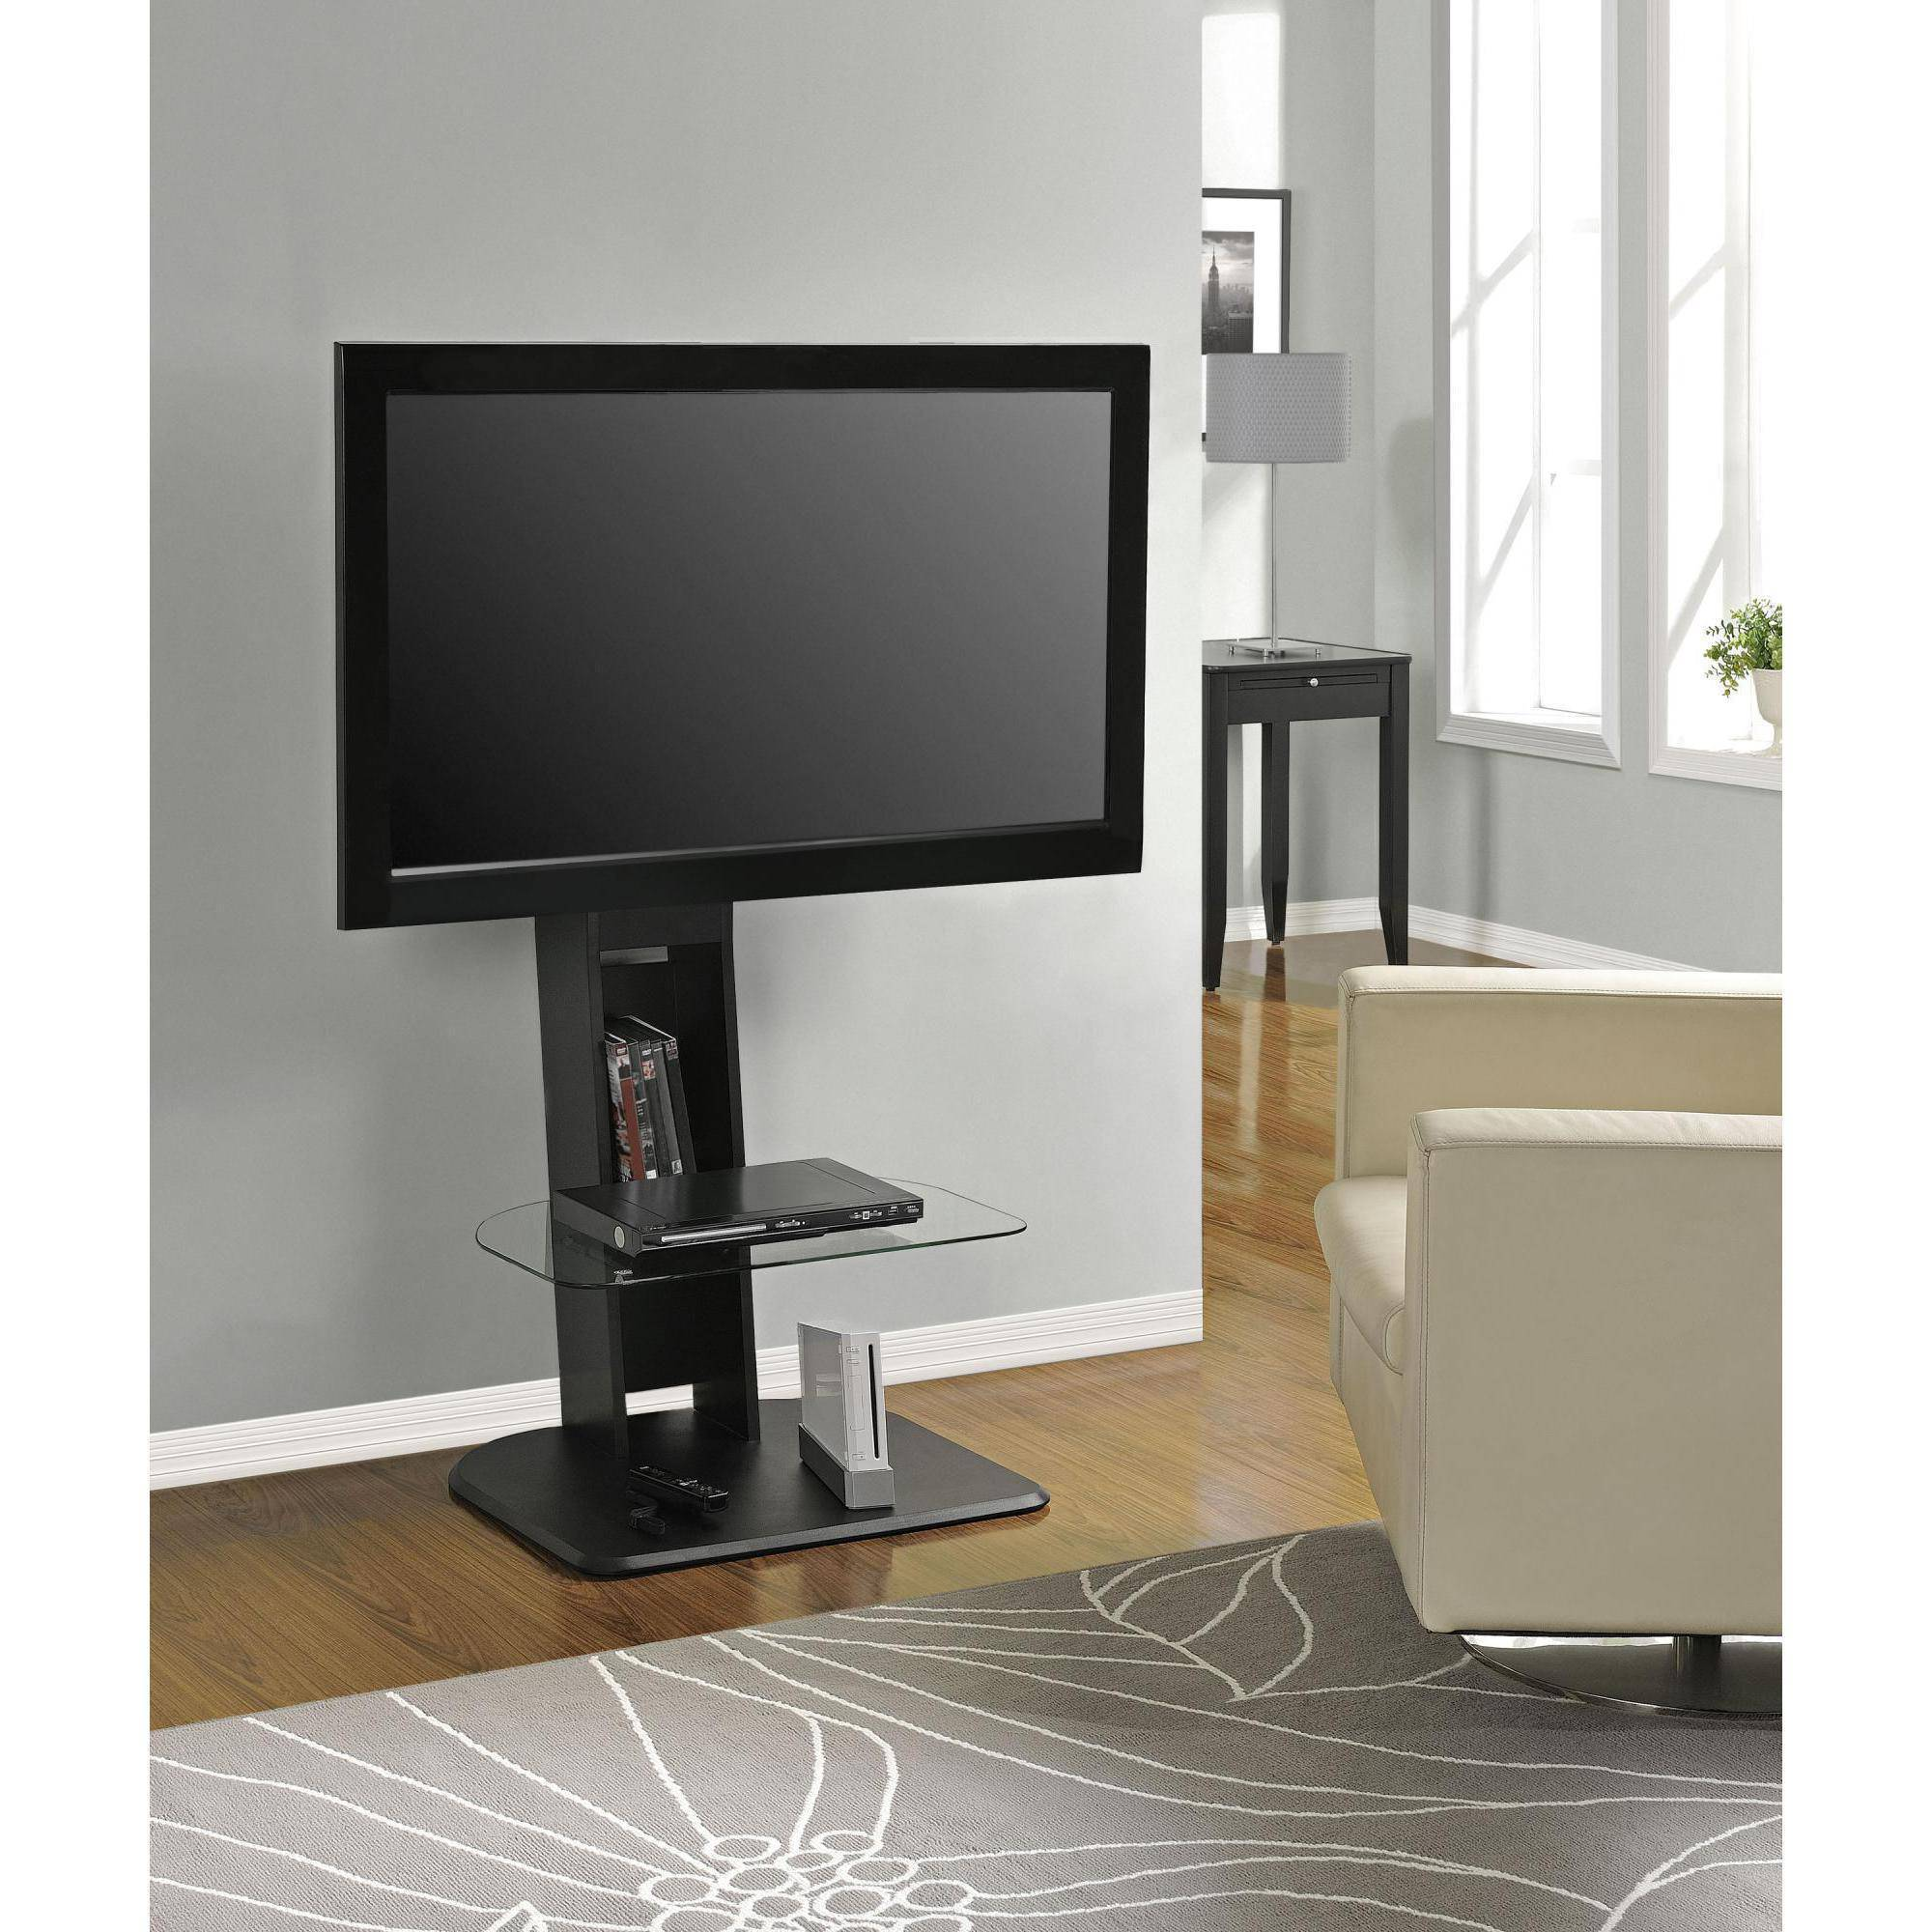 Atlantic Furniture Tabletop TV Stand, Black   Walmart.com